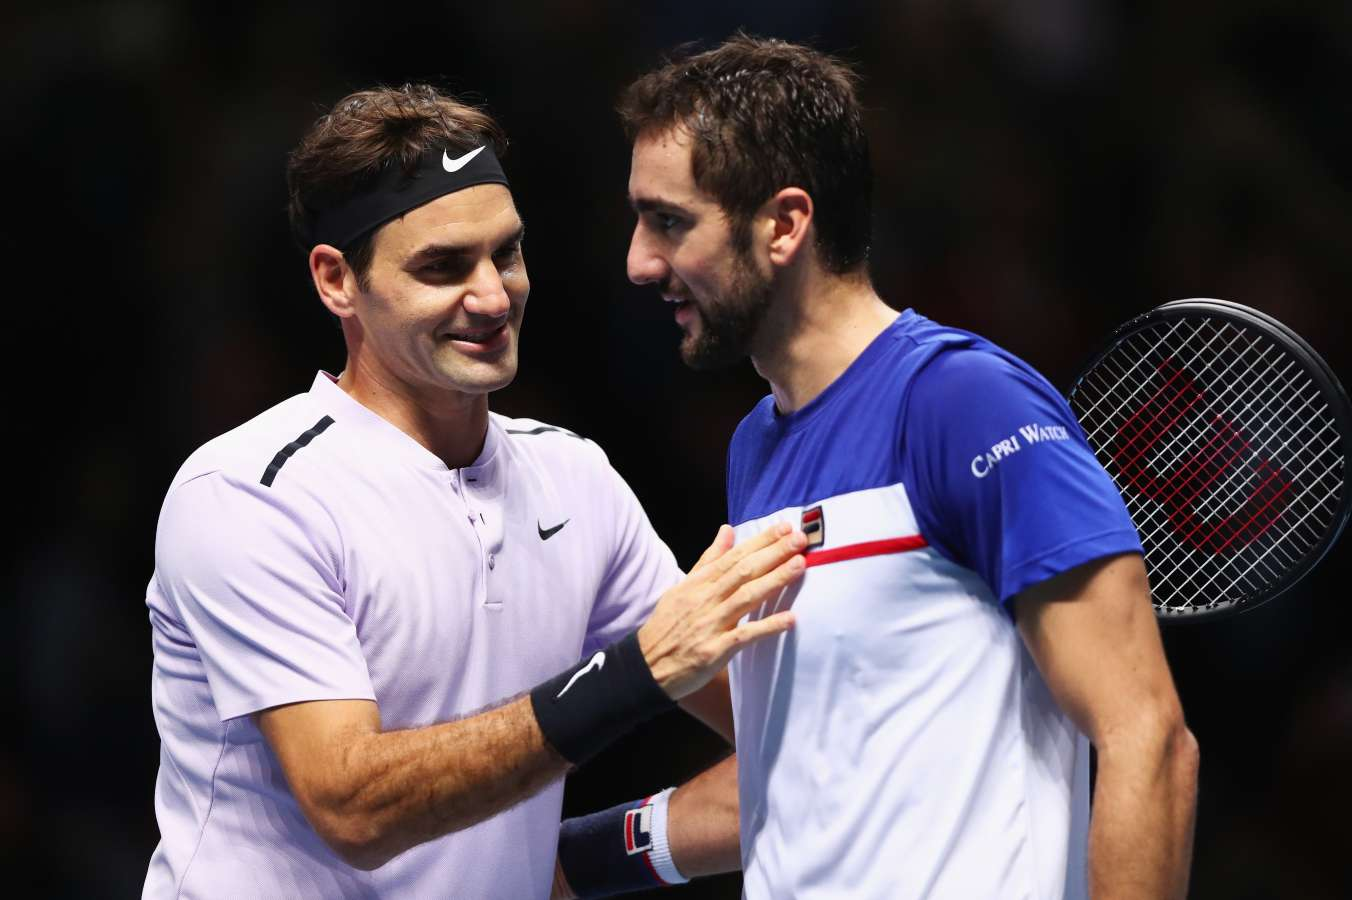 Australian Open Men's Final Preview: Federer v Cilic